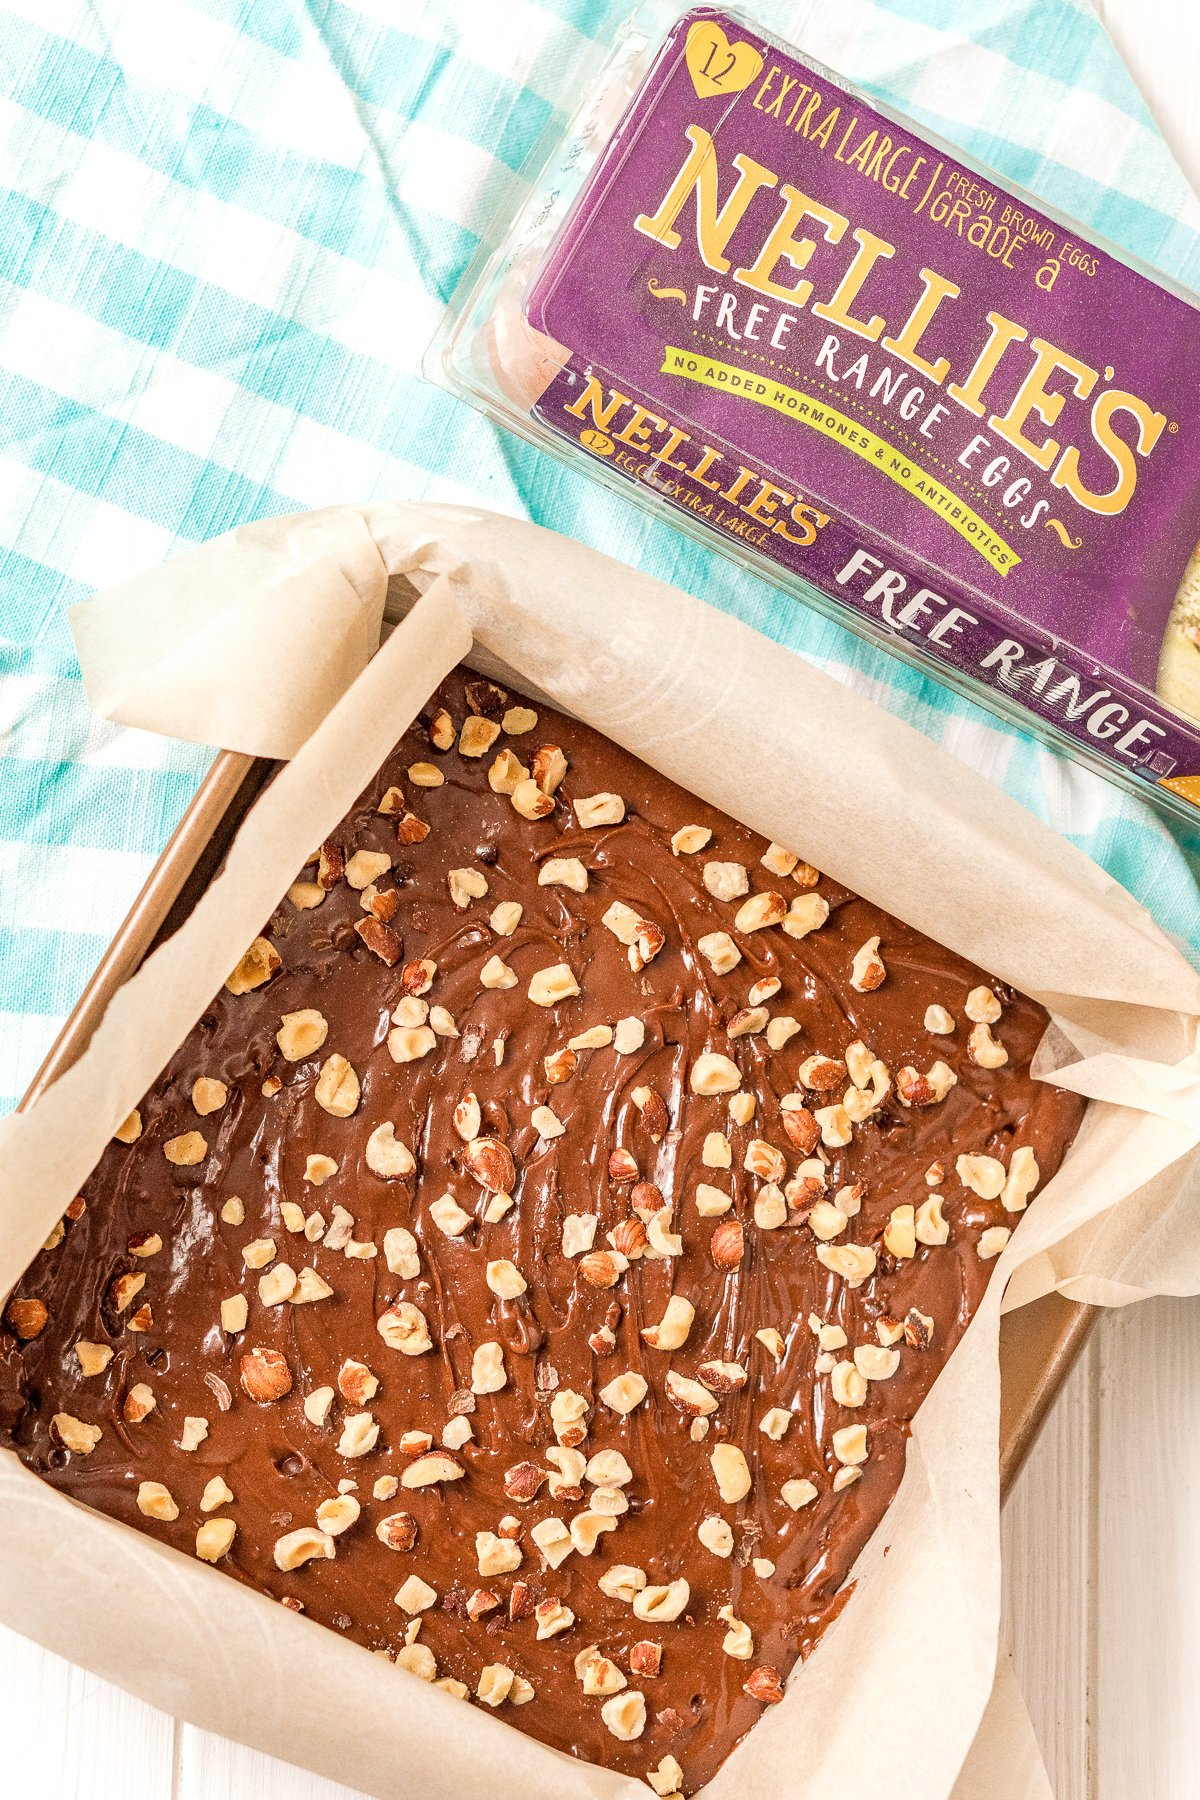 Uncooked brownie batter in a square baking dish topped with chopped hazelnuts next to a carton of eggs.